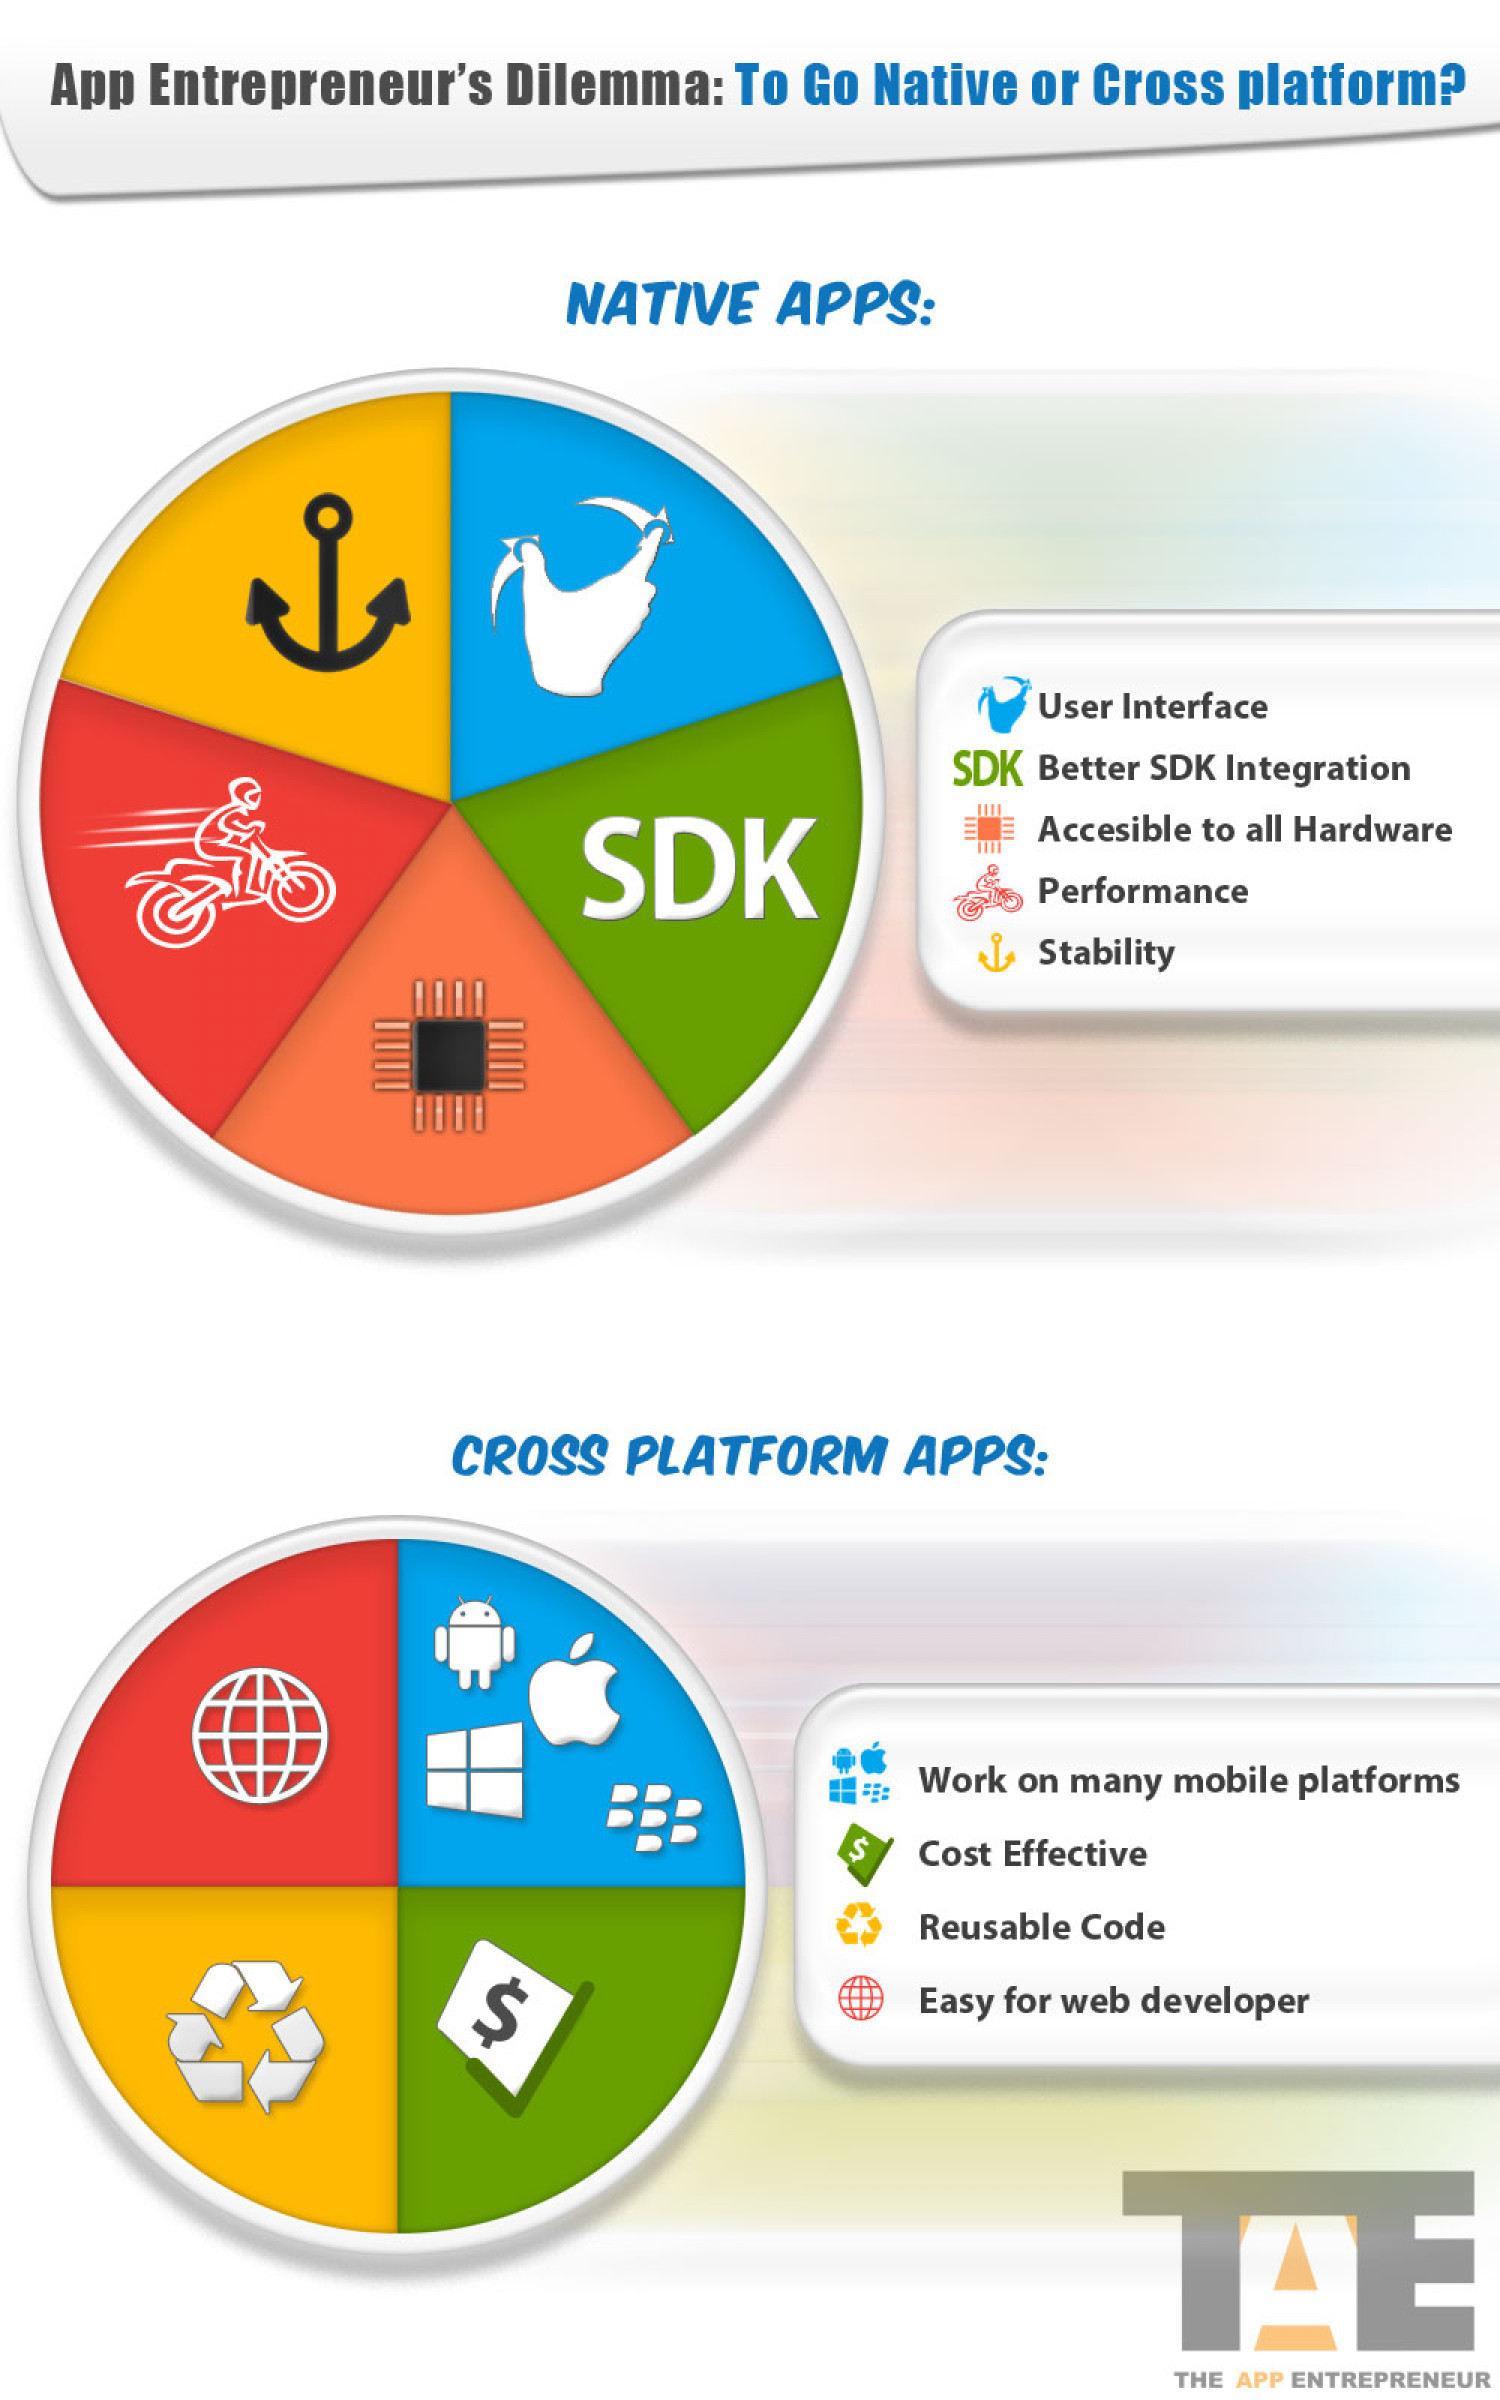 App Entrepreneur's Dilemma: To Go Native or Cross Platform? Infographic